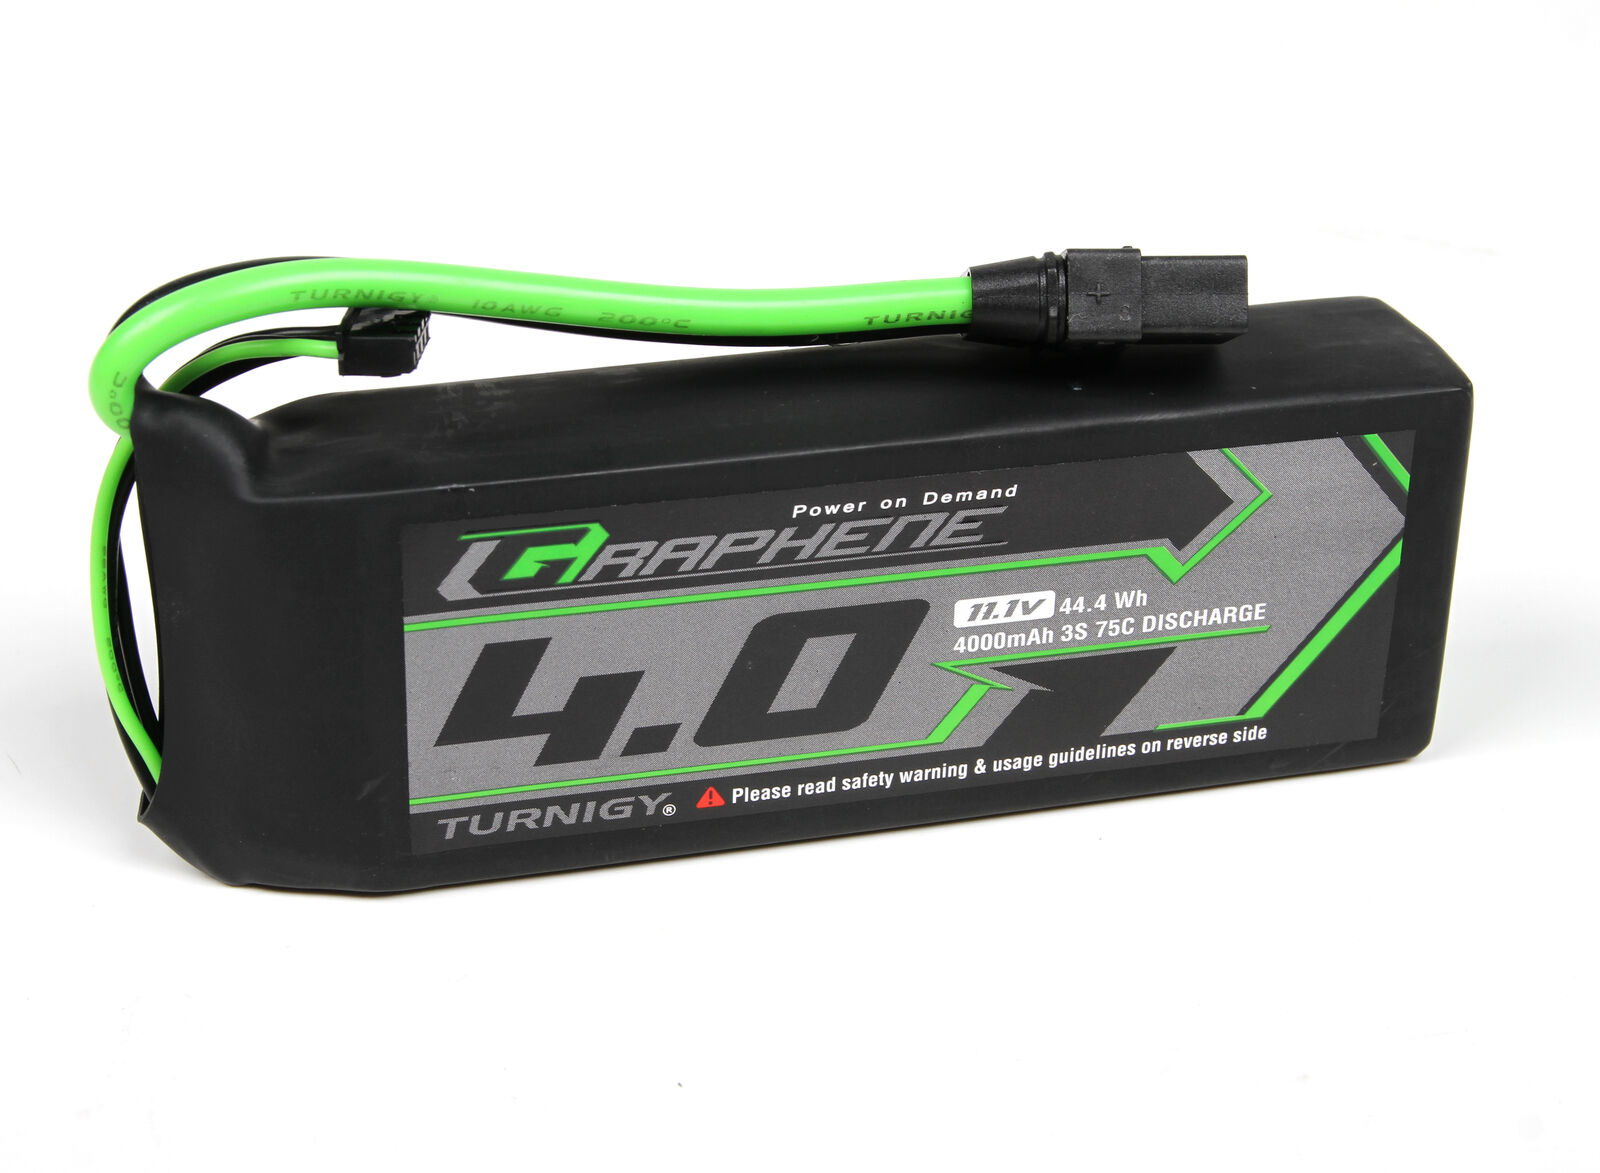 RC Turnigy Graphene Panther 4000mAh 3S 75C Battery Pack w XT90